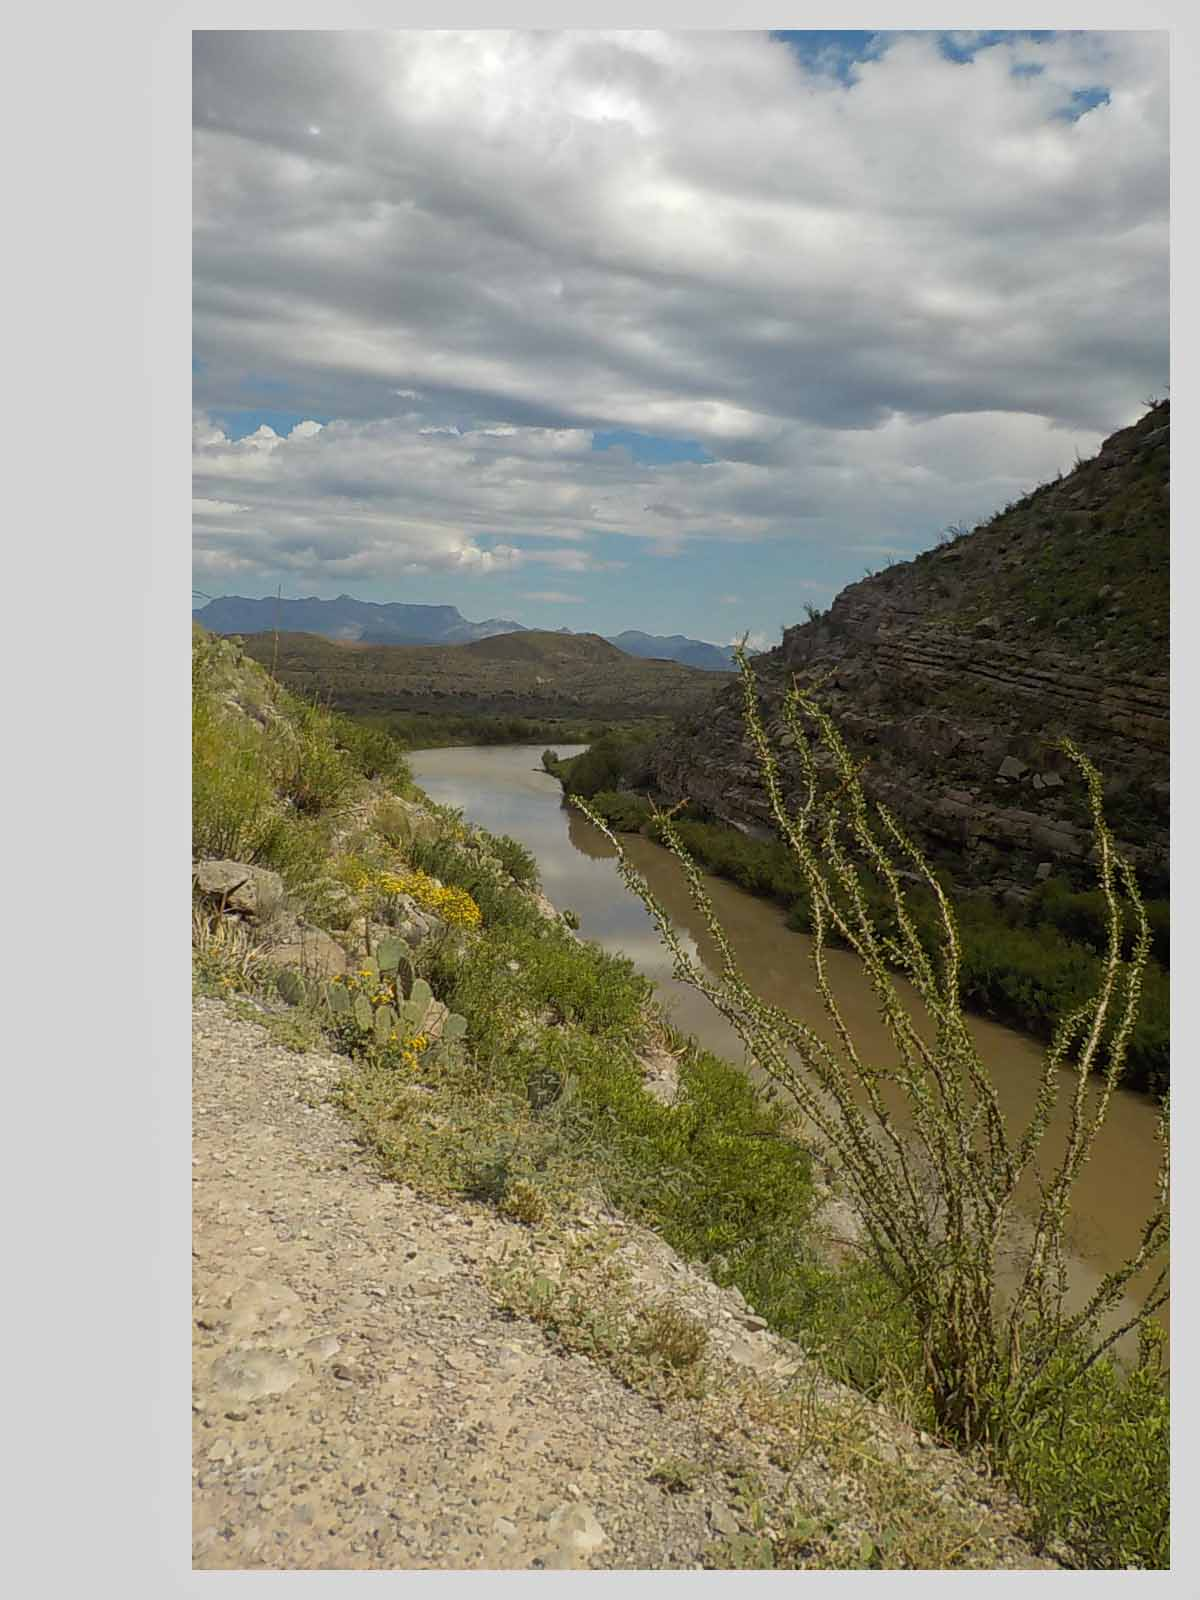 Our route to the Big Bend National Park was down Texas highway 170.  Recommend this picturesque route along the Rio Grande and the Mexican border.